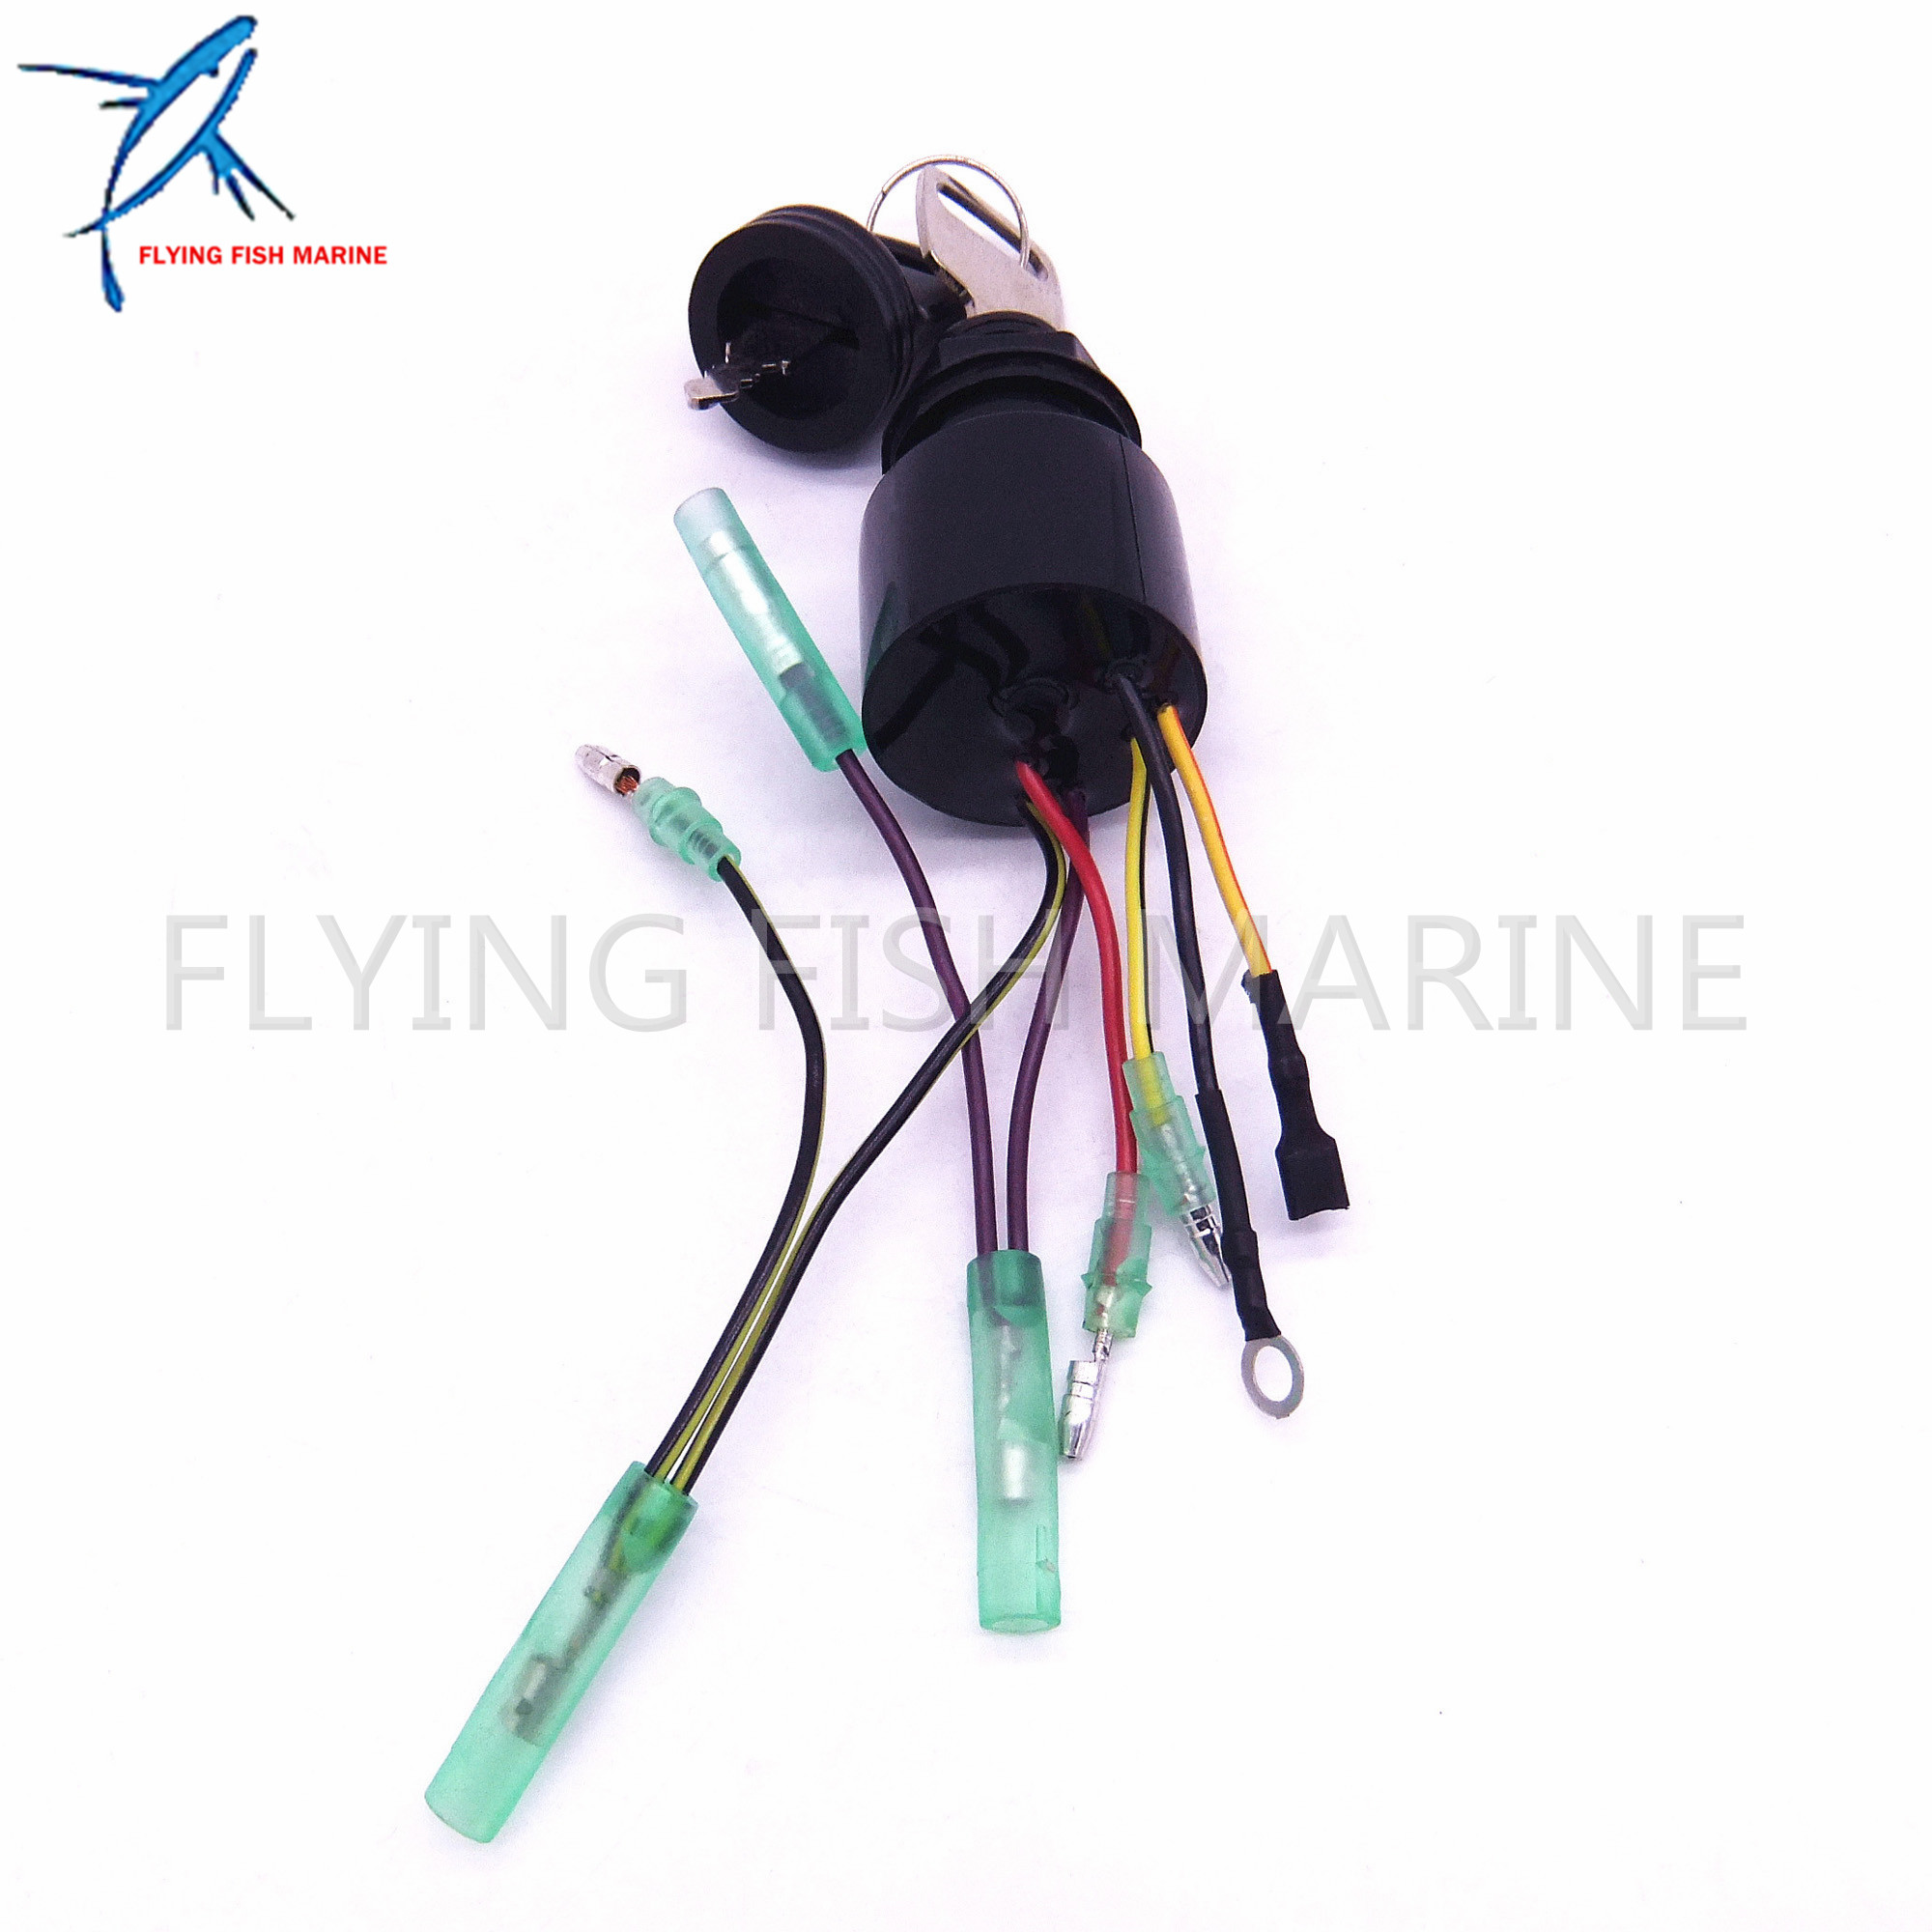 Boat Motor 87-17009A5 Ignition Key Switch for Mercury Outboard Motors 3 Position Off-Run-Start ,Free shipping